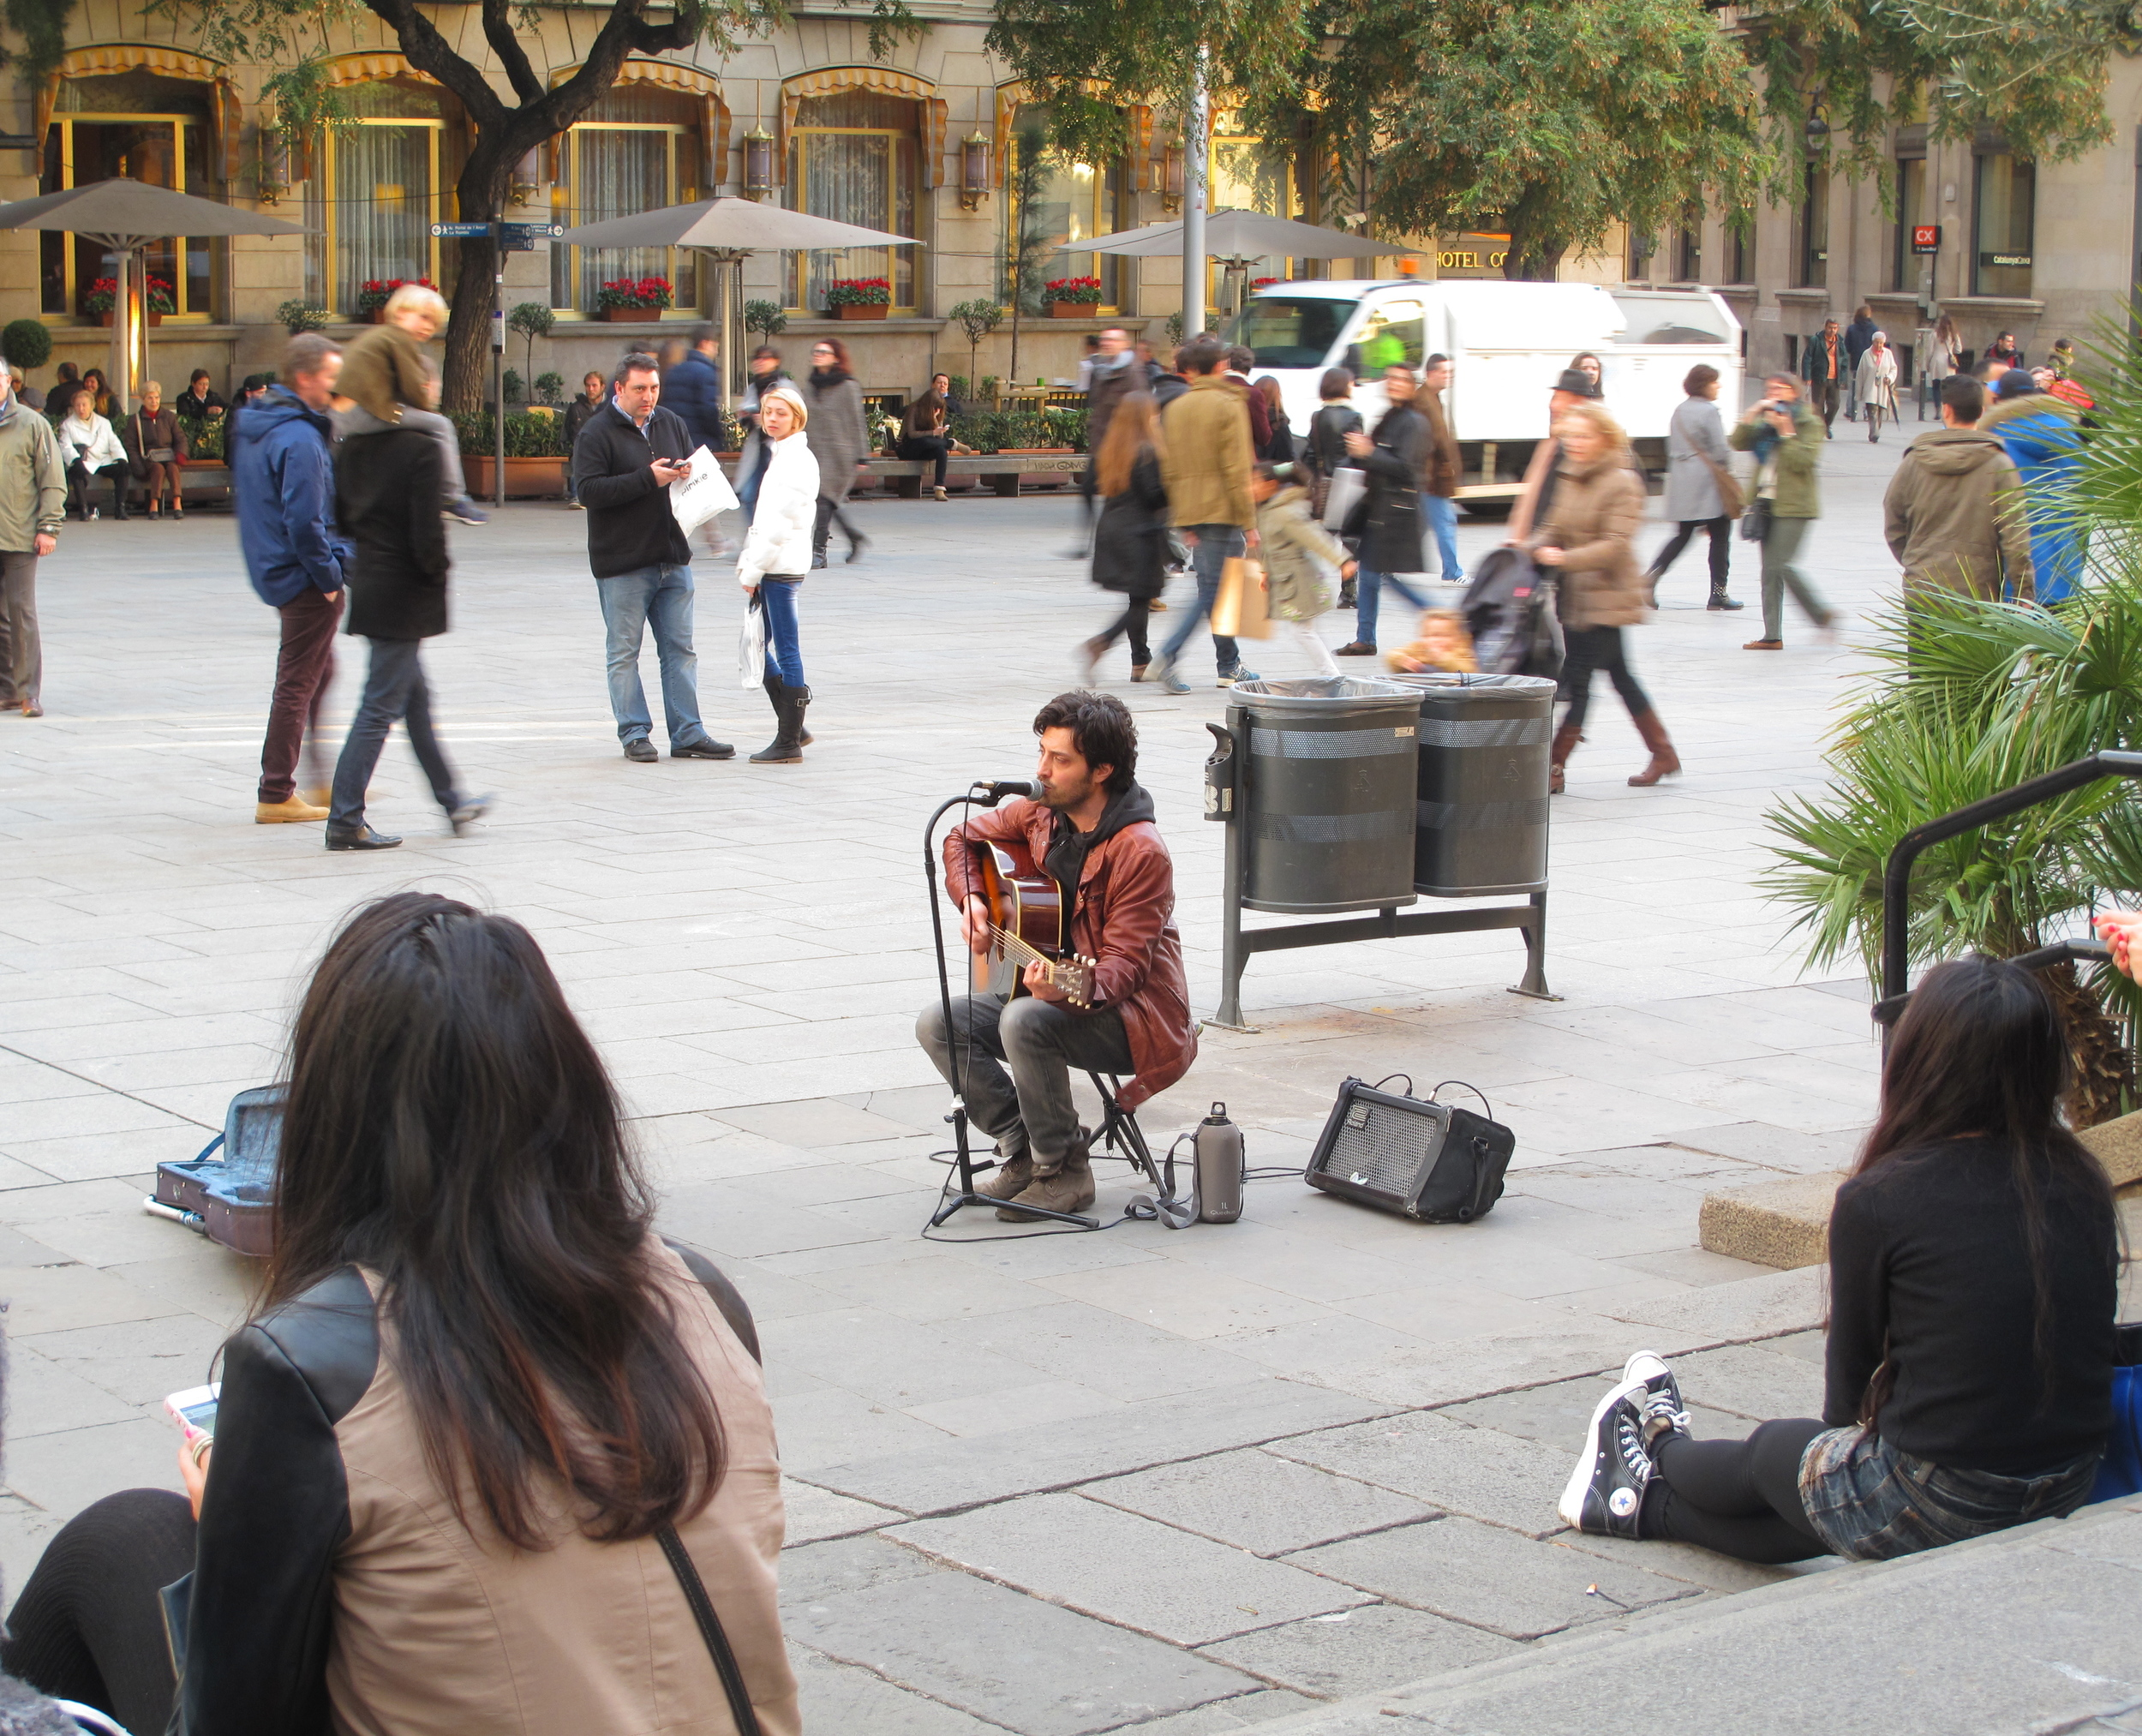 Rita falls in love with the guitar player in the square in Barcelona